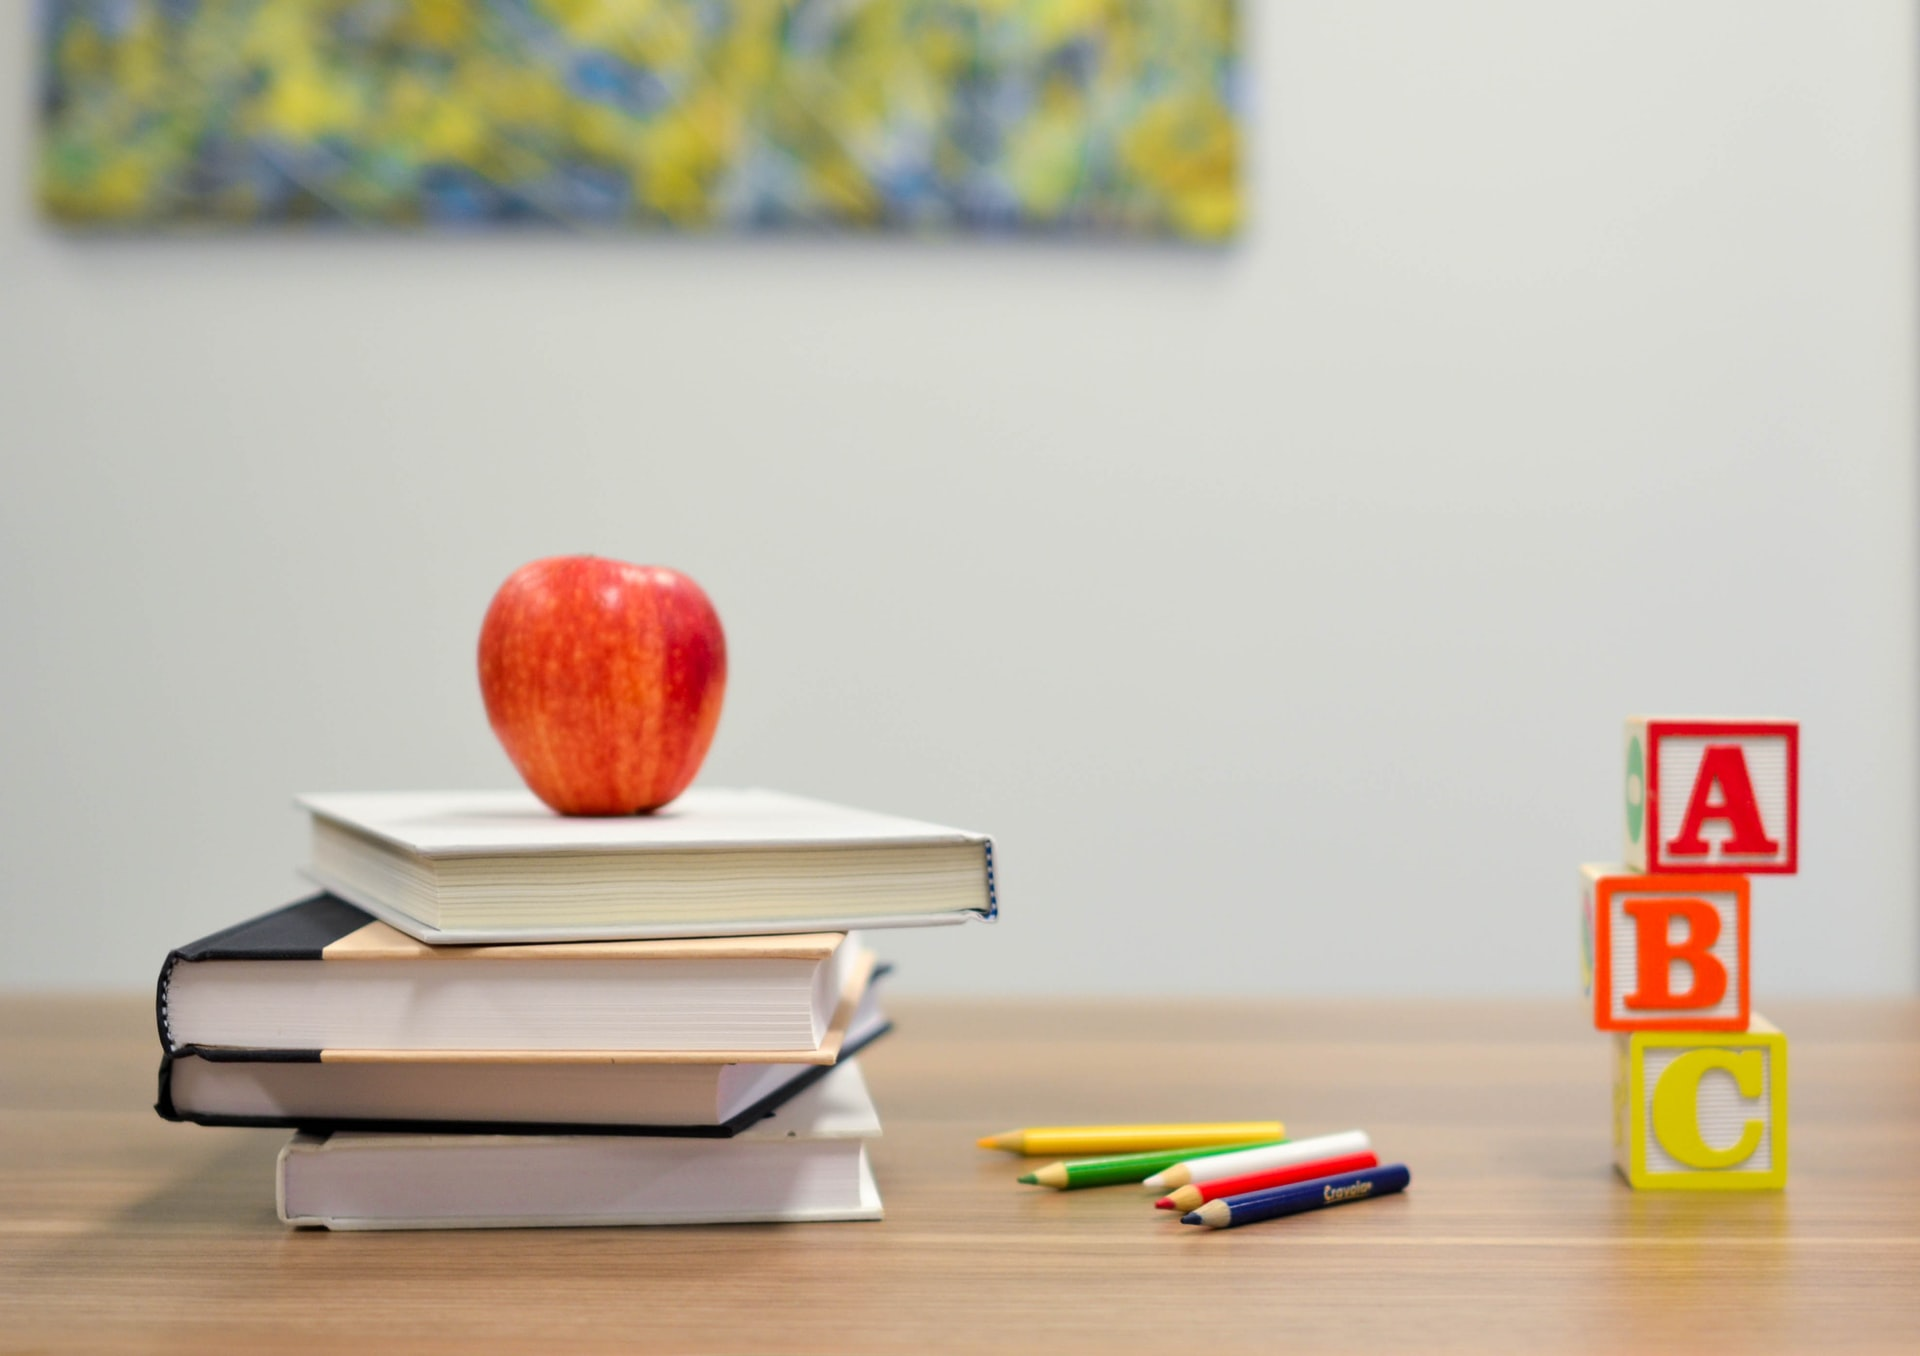 Education Themed Image With Textbooks